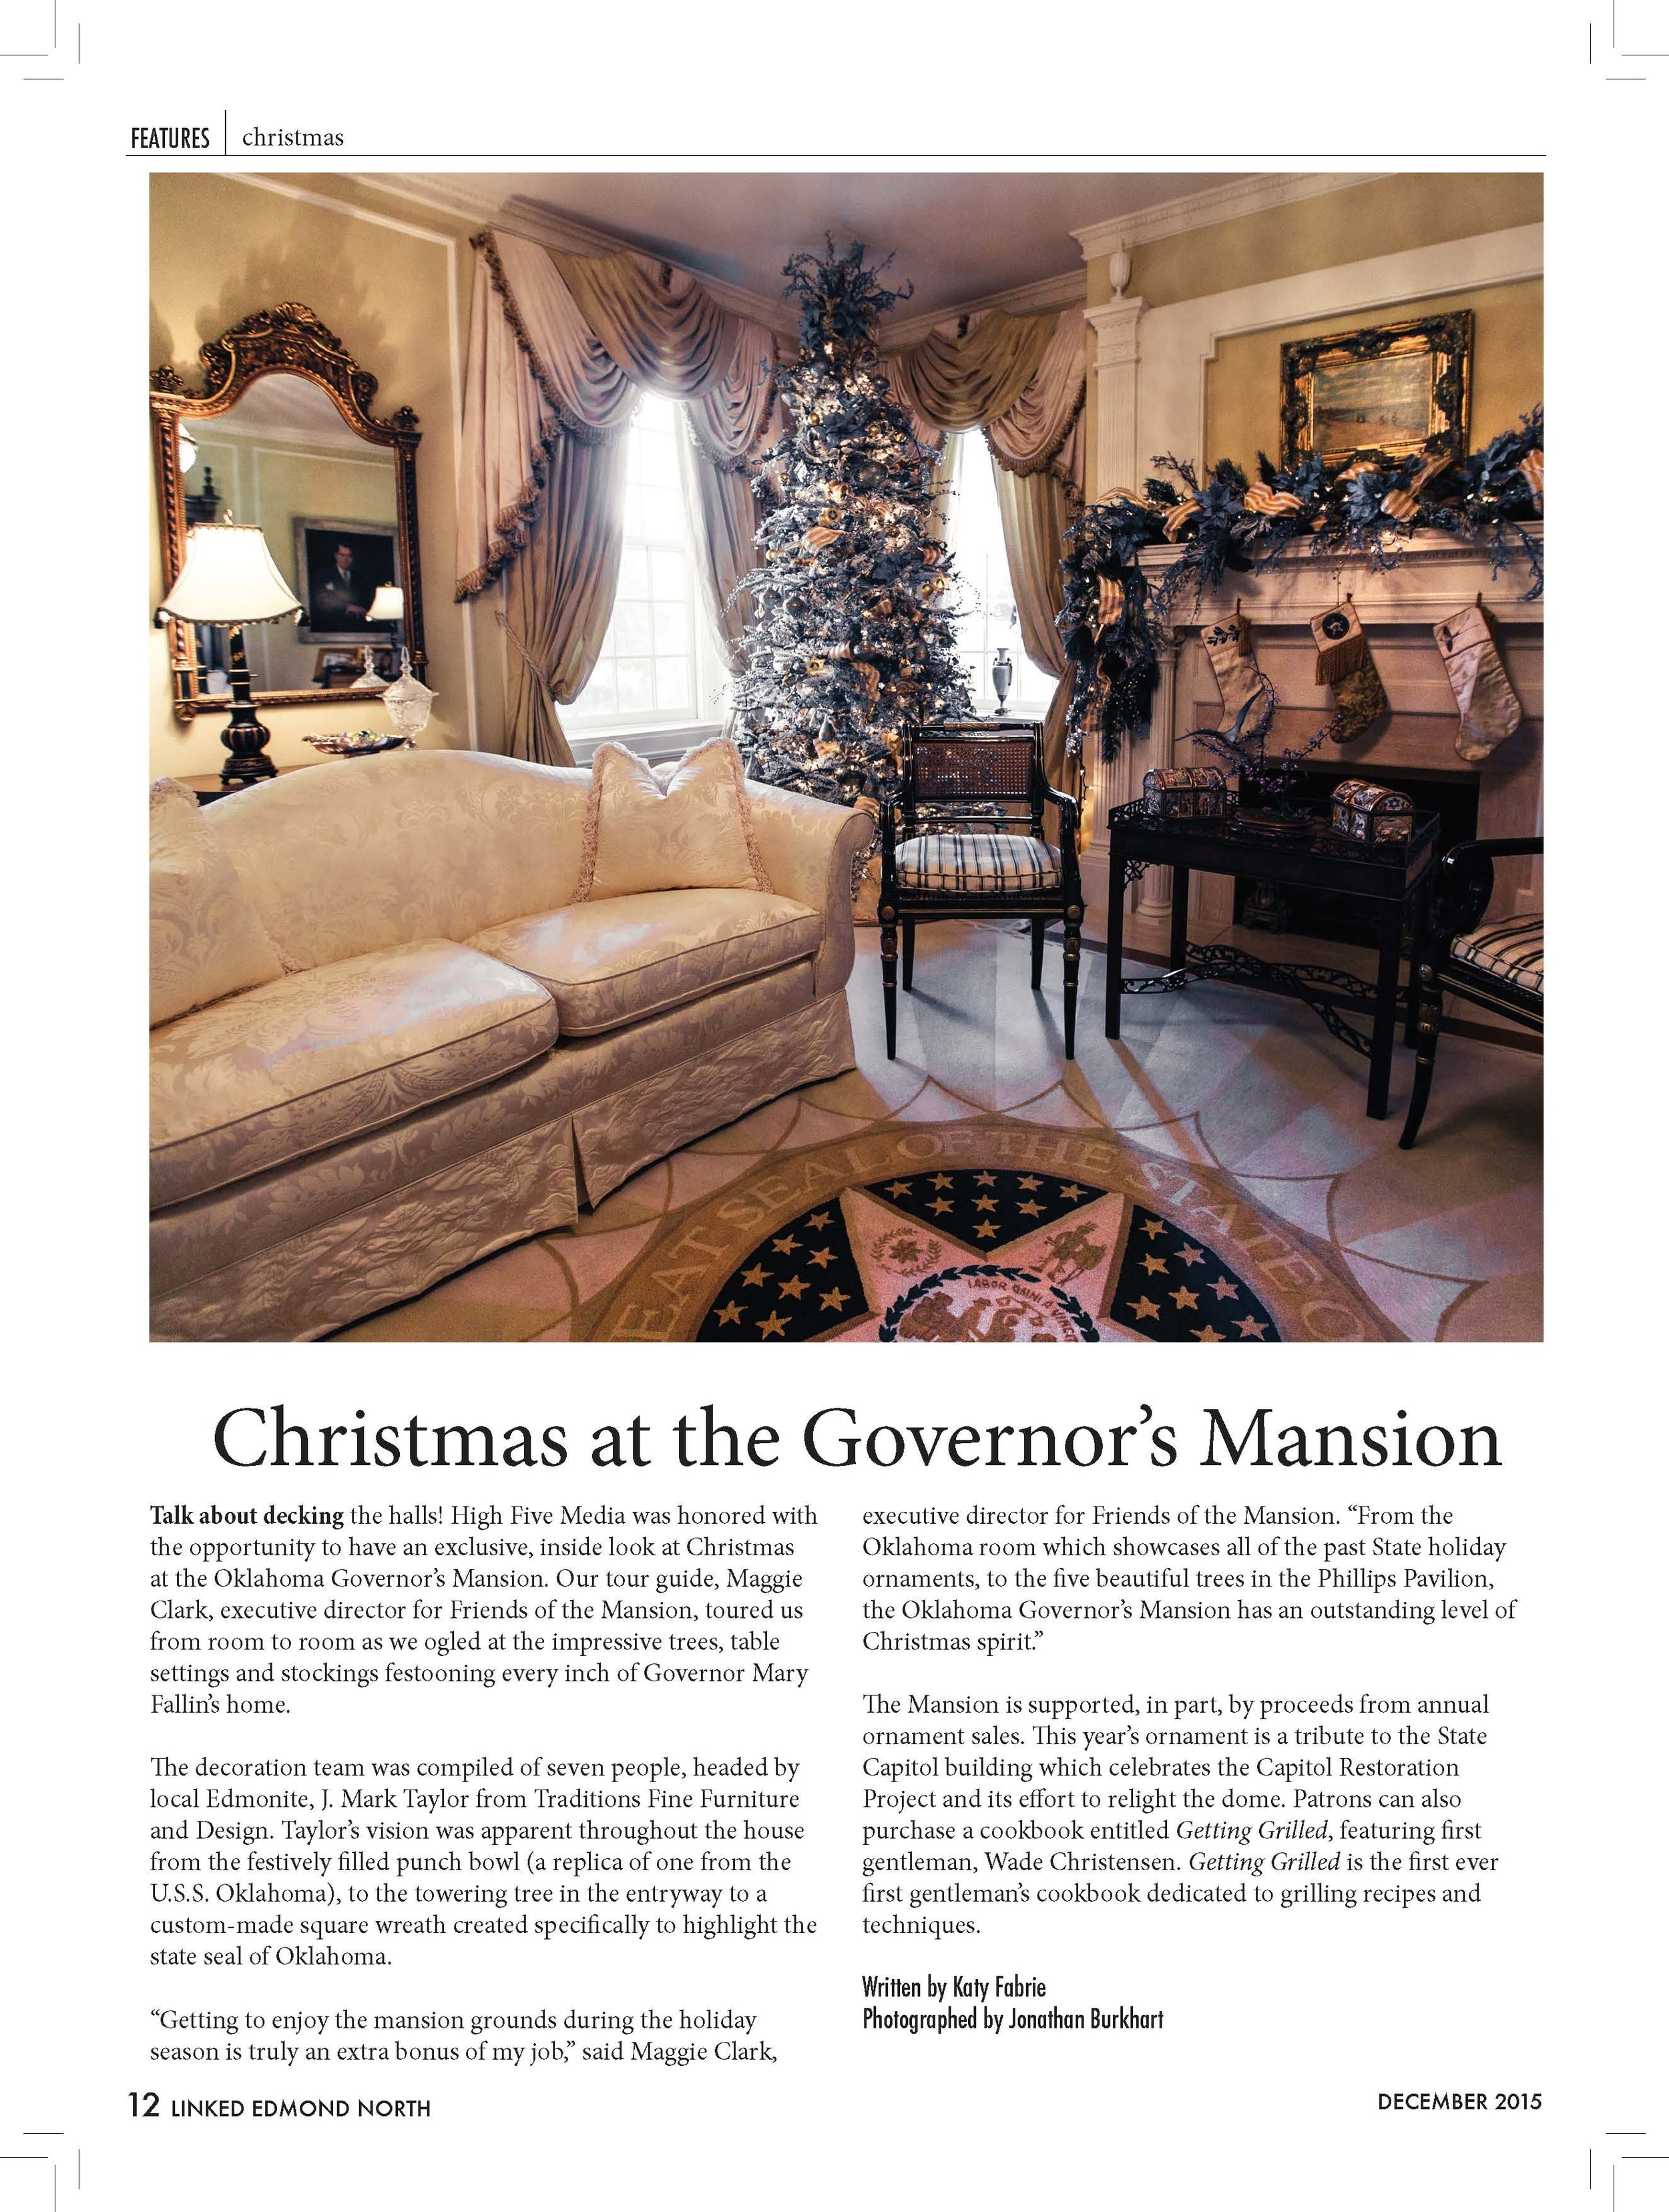 "Christmas at the Governor's Mansion   Talk about decking the halls! High Five Media was honored with  the opportunity to have an exclusive, inside look at Christmas  at the Oklahoma Governor's Mansion. Our tour guide, Maggie  Clark, executive director for Friends of the Mansion, toured us  from room to room as we ogled at the impressive trees, table  settings and stockings festooning every inch of Governor Mary  Fallin's home.  The decoration team was compiled of seven people, headed by  local Edmonite, J. Mark Taylor from Traditions Fine Furniture  and Design. Taylor's vision was apparent throughout the house  from the festively filled punch bowl (a replica of one from the  U.S.S. Oklahoma), to the towering tree in the entryway to a  custom-made square wreath created specifically to highlight the  state seal of Oklahoma.  ""Getting to enjoy the mansion grounds during the holiday  season is truly an extra bonus of my job,"" said Maggie Clark,  executive director for Friends of the Mansion. ""From the  Oklahoma room which showcases all of the past State holiday  ornaments, to the five beautiful trees in the Phillips Pavilion,  the Oklahoma Governor's Mansion has an outstanding level of  Christmas spirit.""  The Mansion is supported, in part, by proceeds from annual  ornament sales. This year's ornament is a tribute to the State  Capitol building which celebrates the Capitol Restoration  Project and its effort to relight the dome. Patrons can also  purchase a cookbook entitled Getting Grilled, featuring first  gentleman, Wade Christensen. Getting Grilled is the first ever  first gentleman's cookbook dedicated to grilling recipes and  techniques.  Written by Katy Fabrie  Photographed by Jonathan Burkhart"